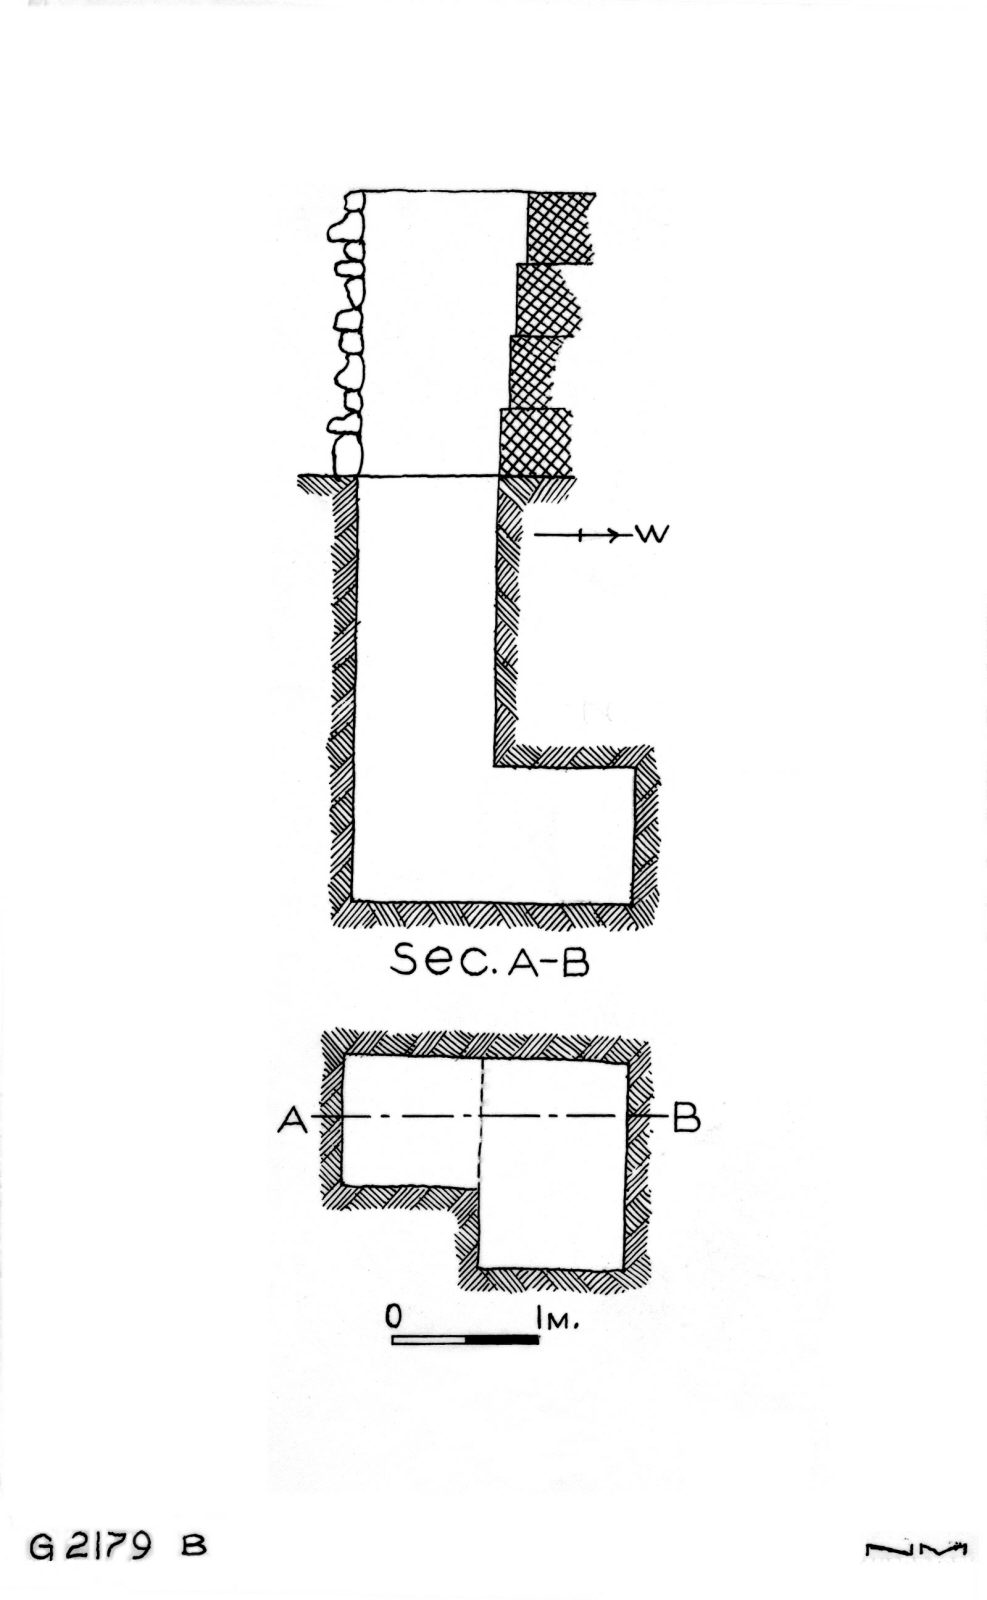 Maps and plans: G 2179, Shaft B